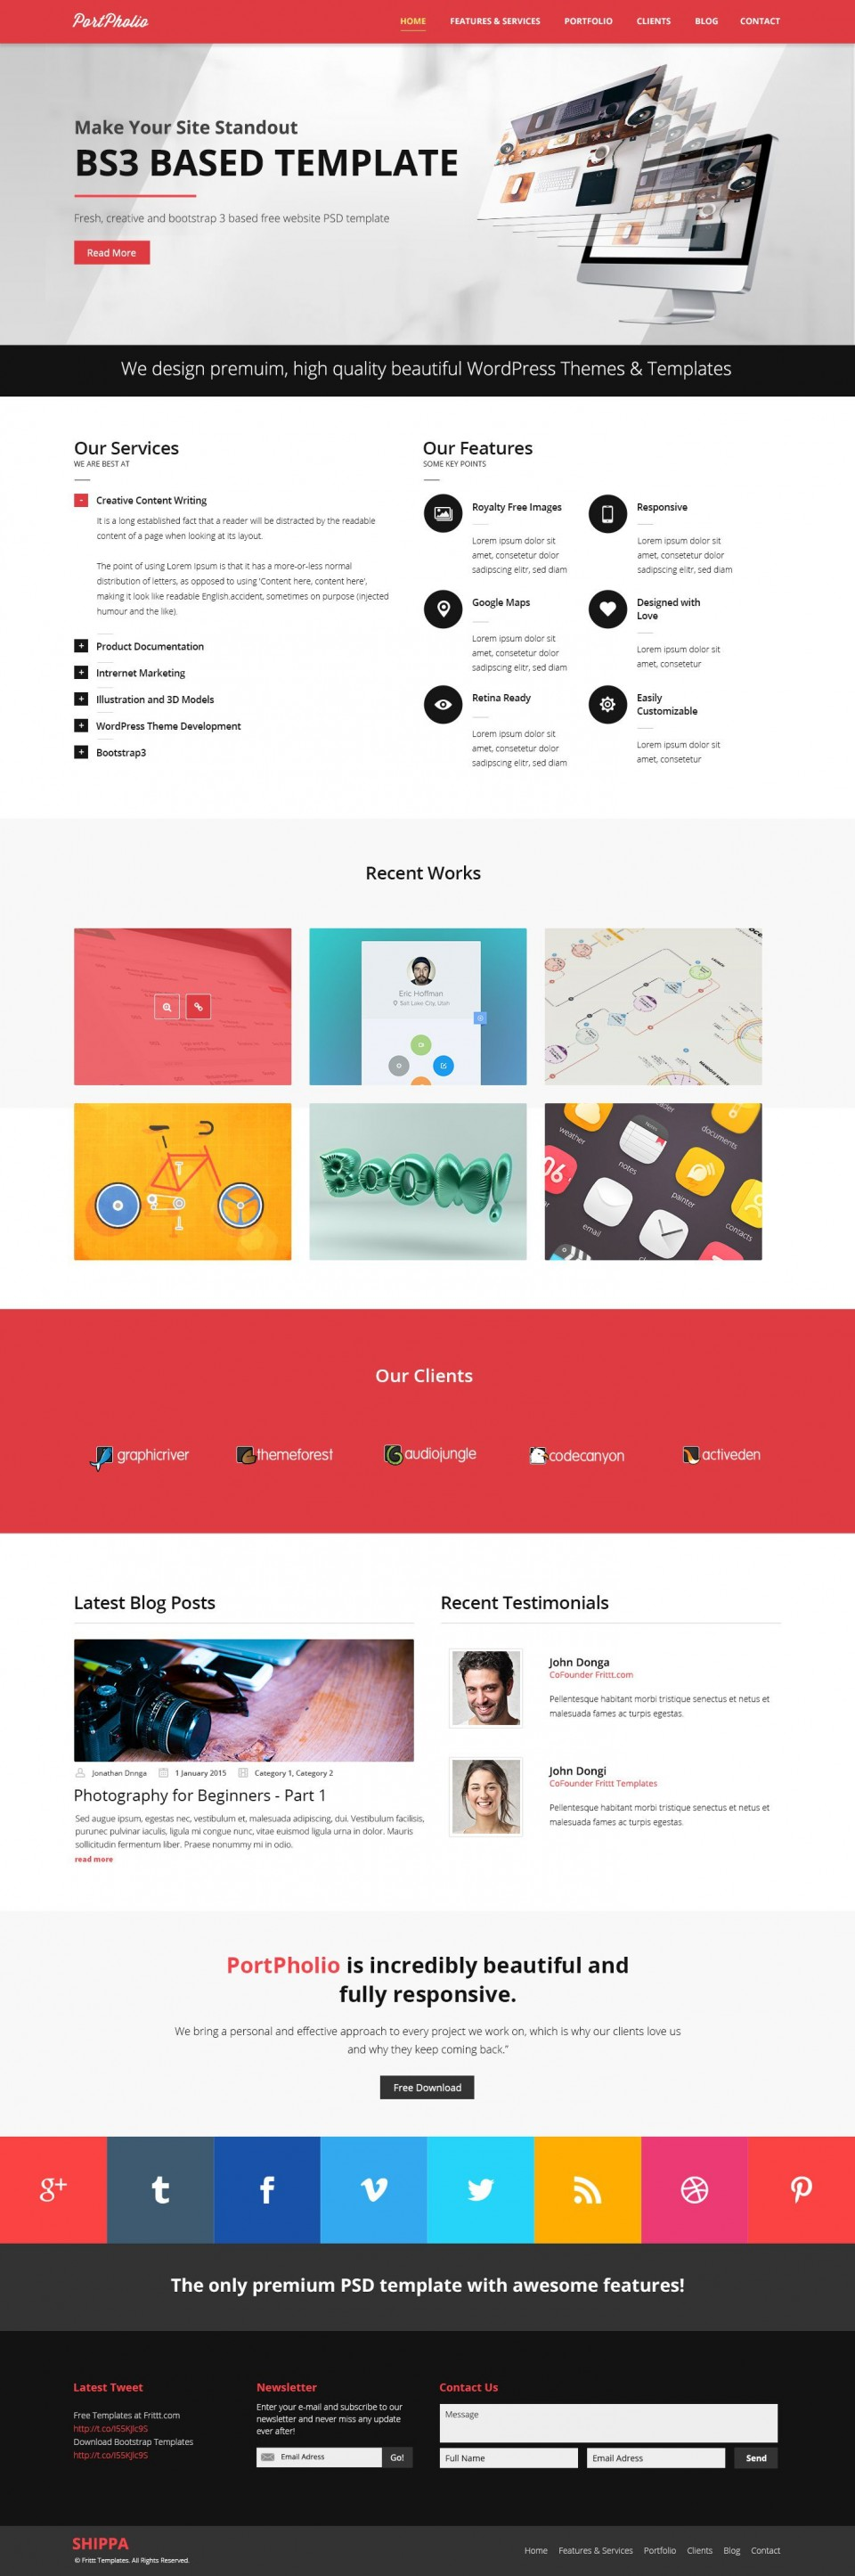 003 Rare One Page Website Template Psd Free Download Sample 960